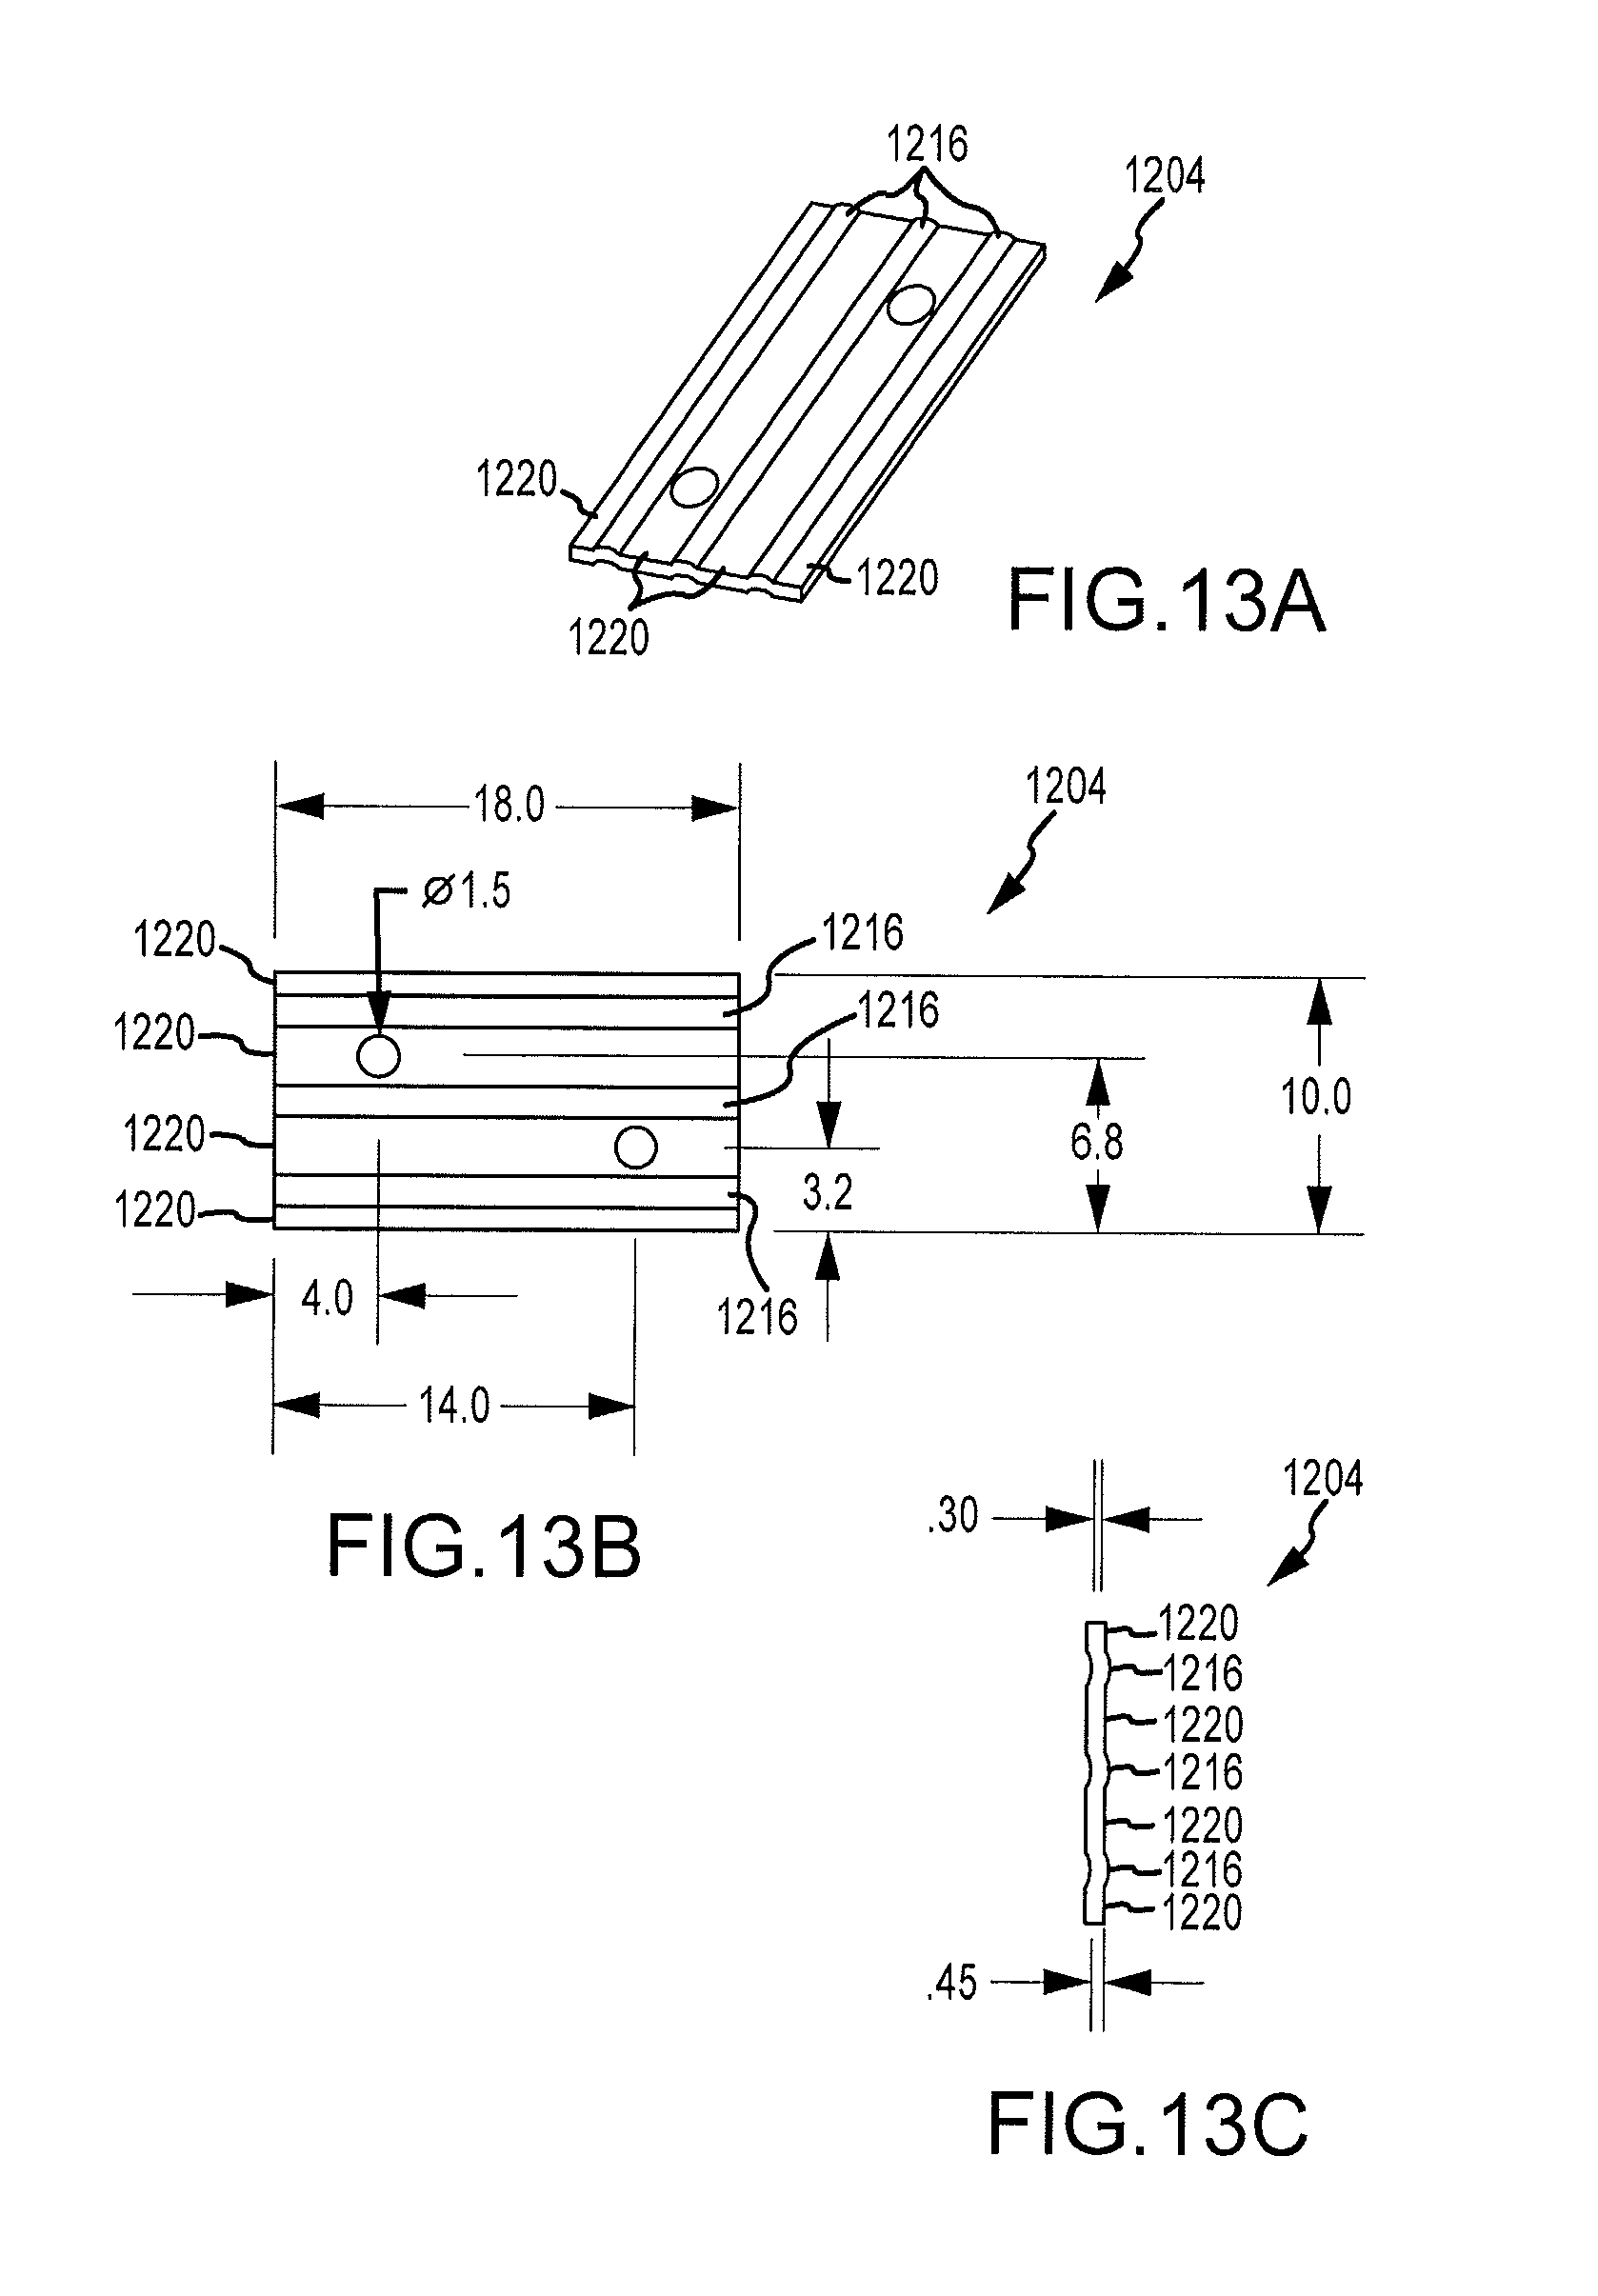 nook motherboard diagram us9176701b2 seam minimization in a handheld dual display device  seam minimization in a handheld dual